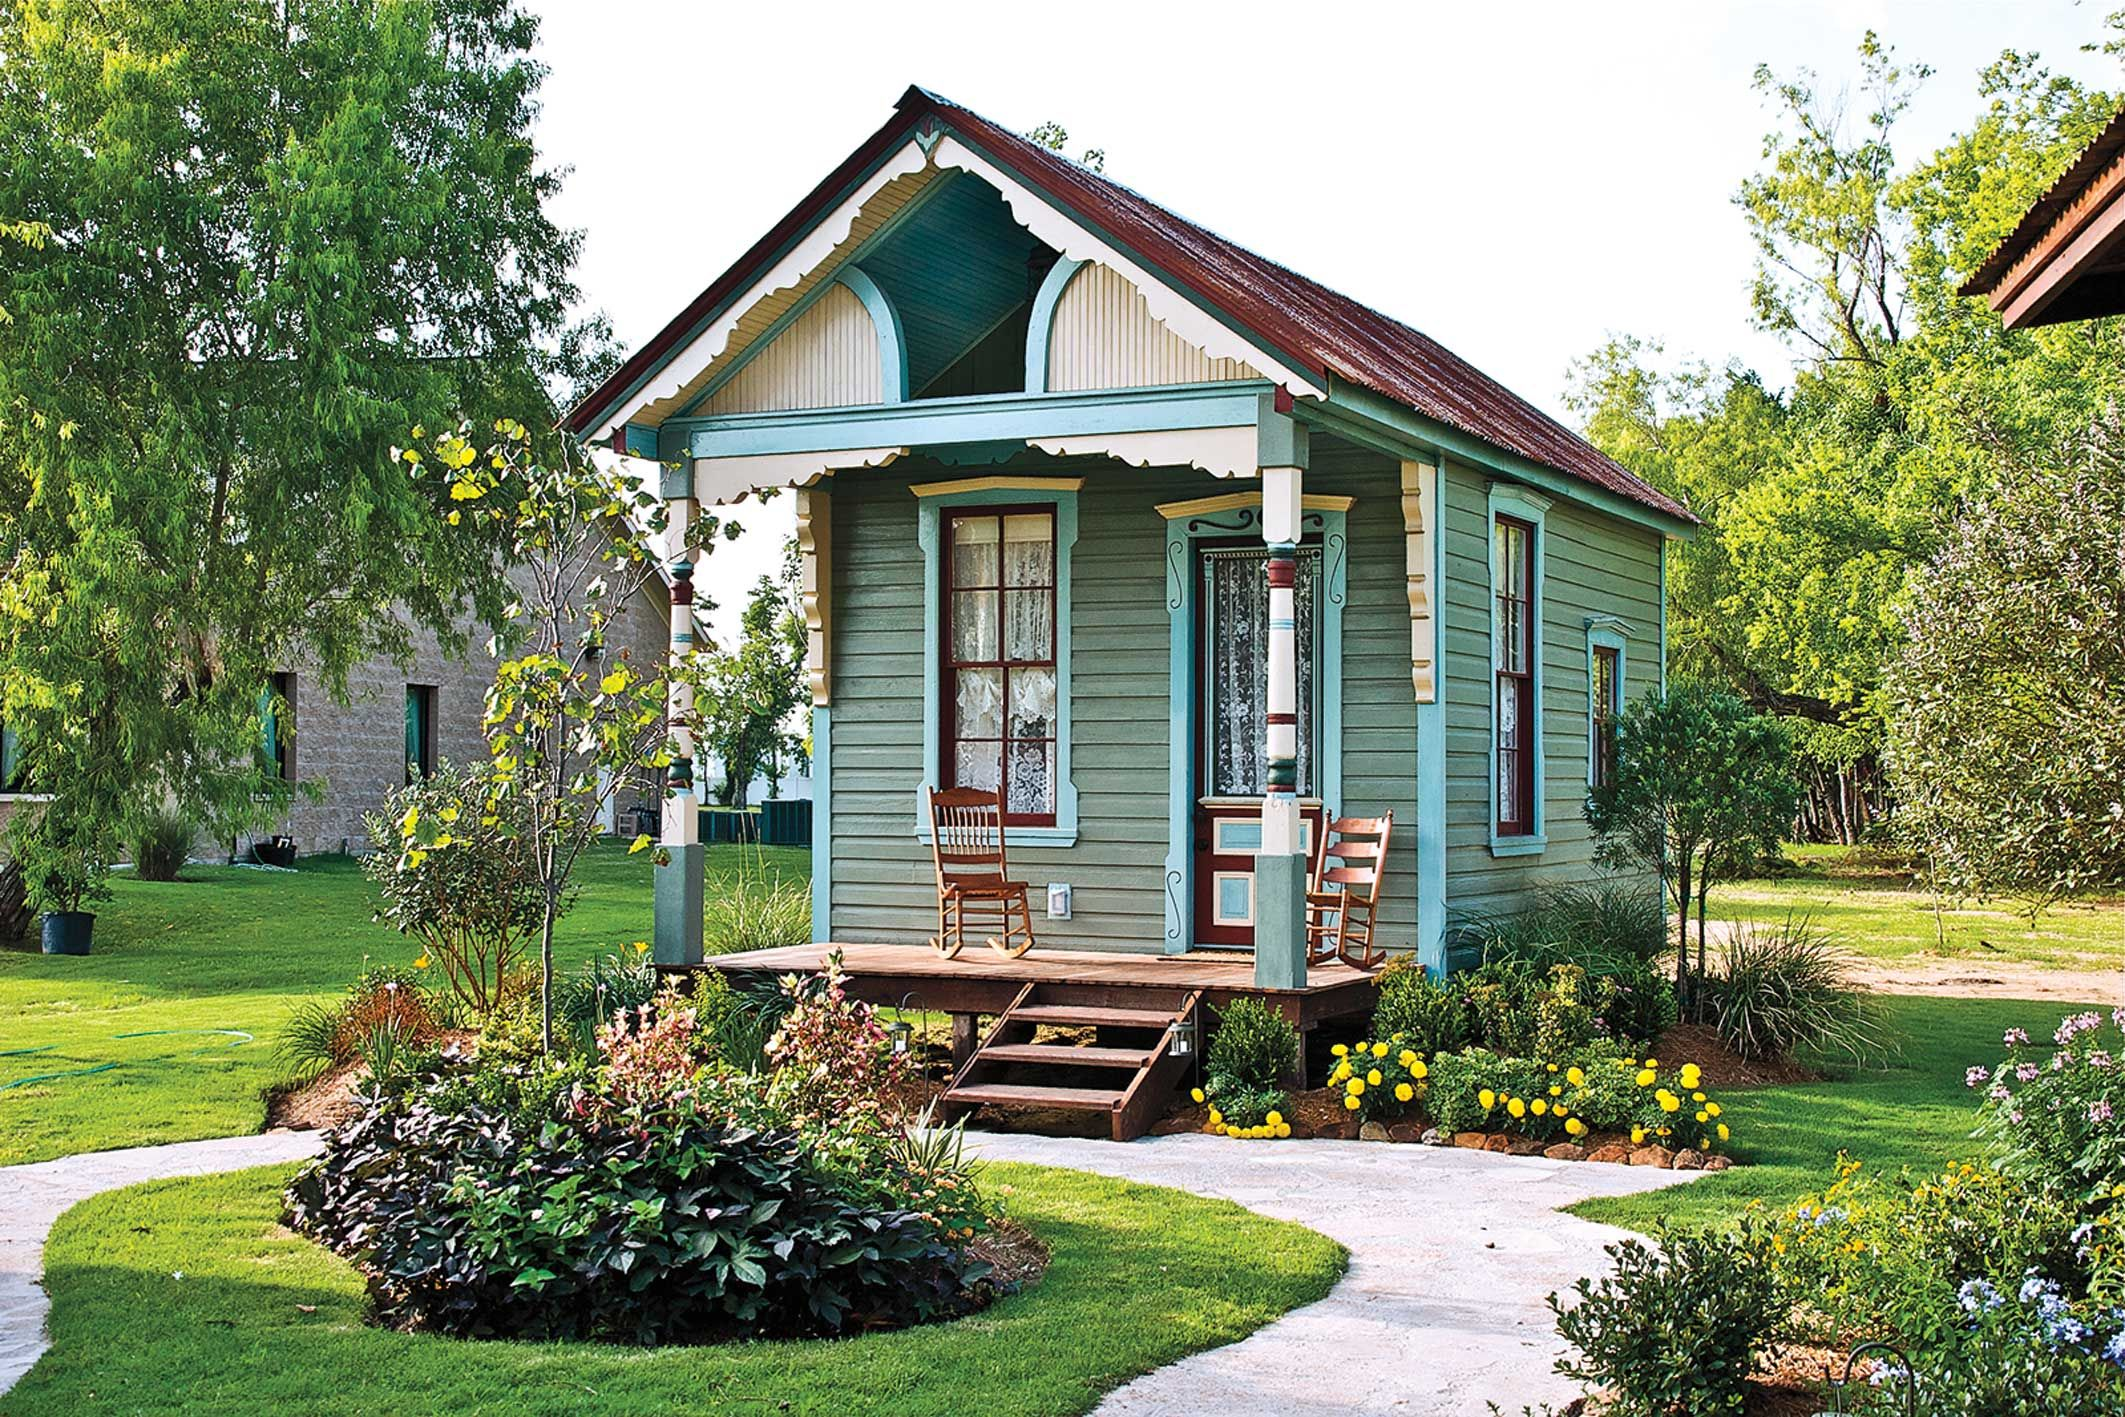 Mortgage Free Living In A Hand Built Tiny Home Small House Inside Tiny Houses Tiny Cottage